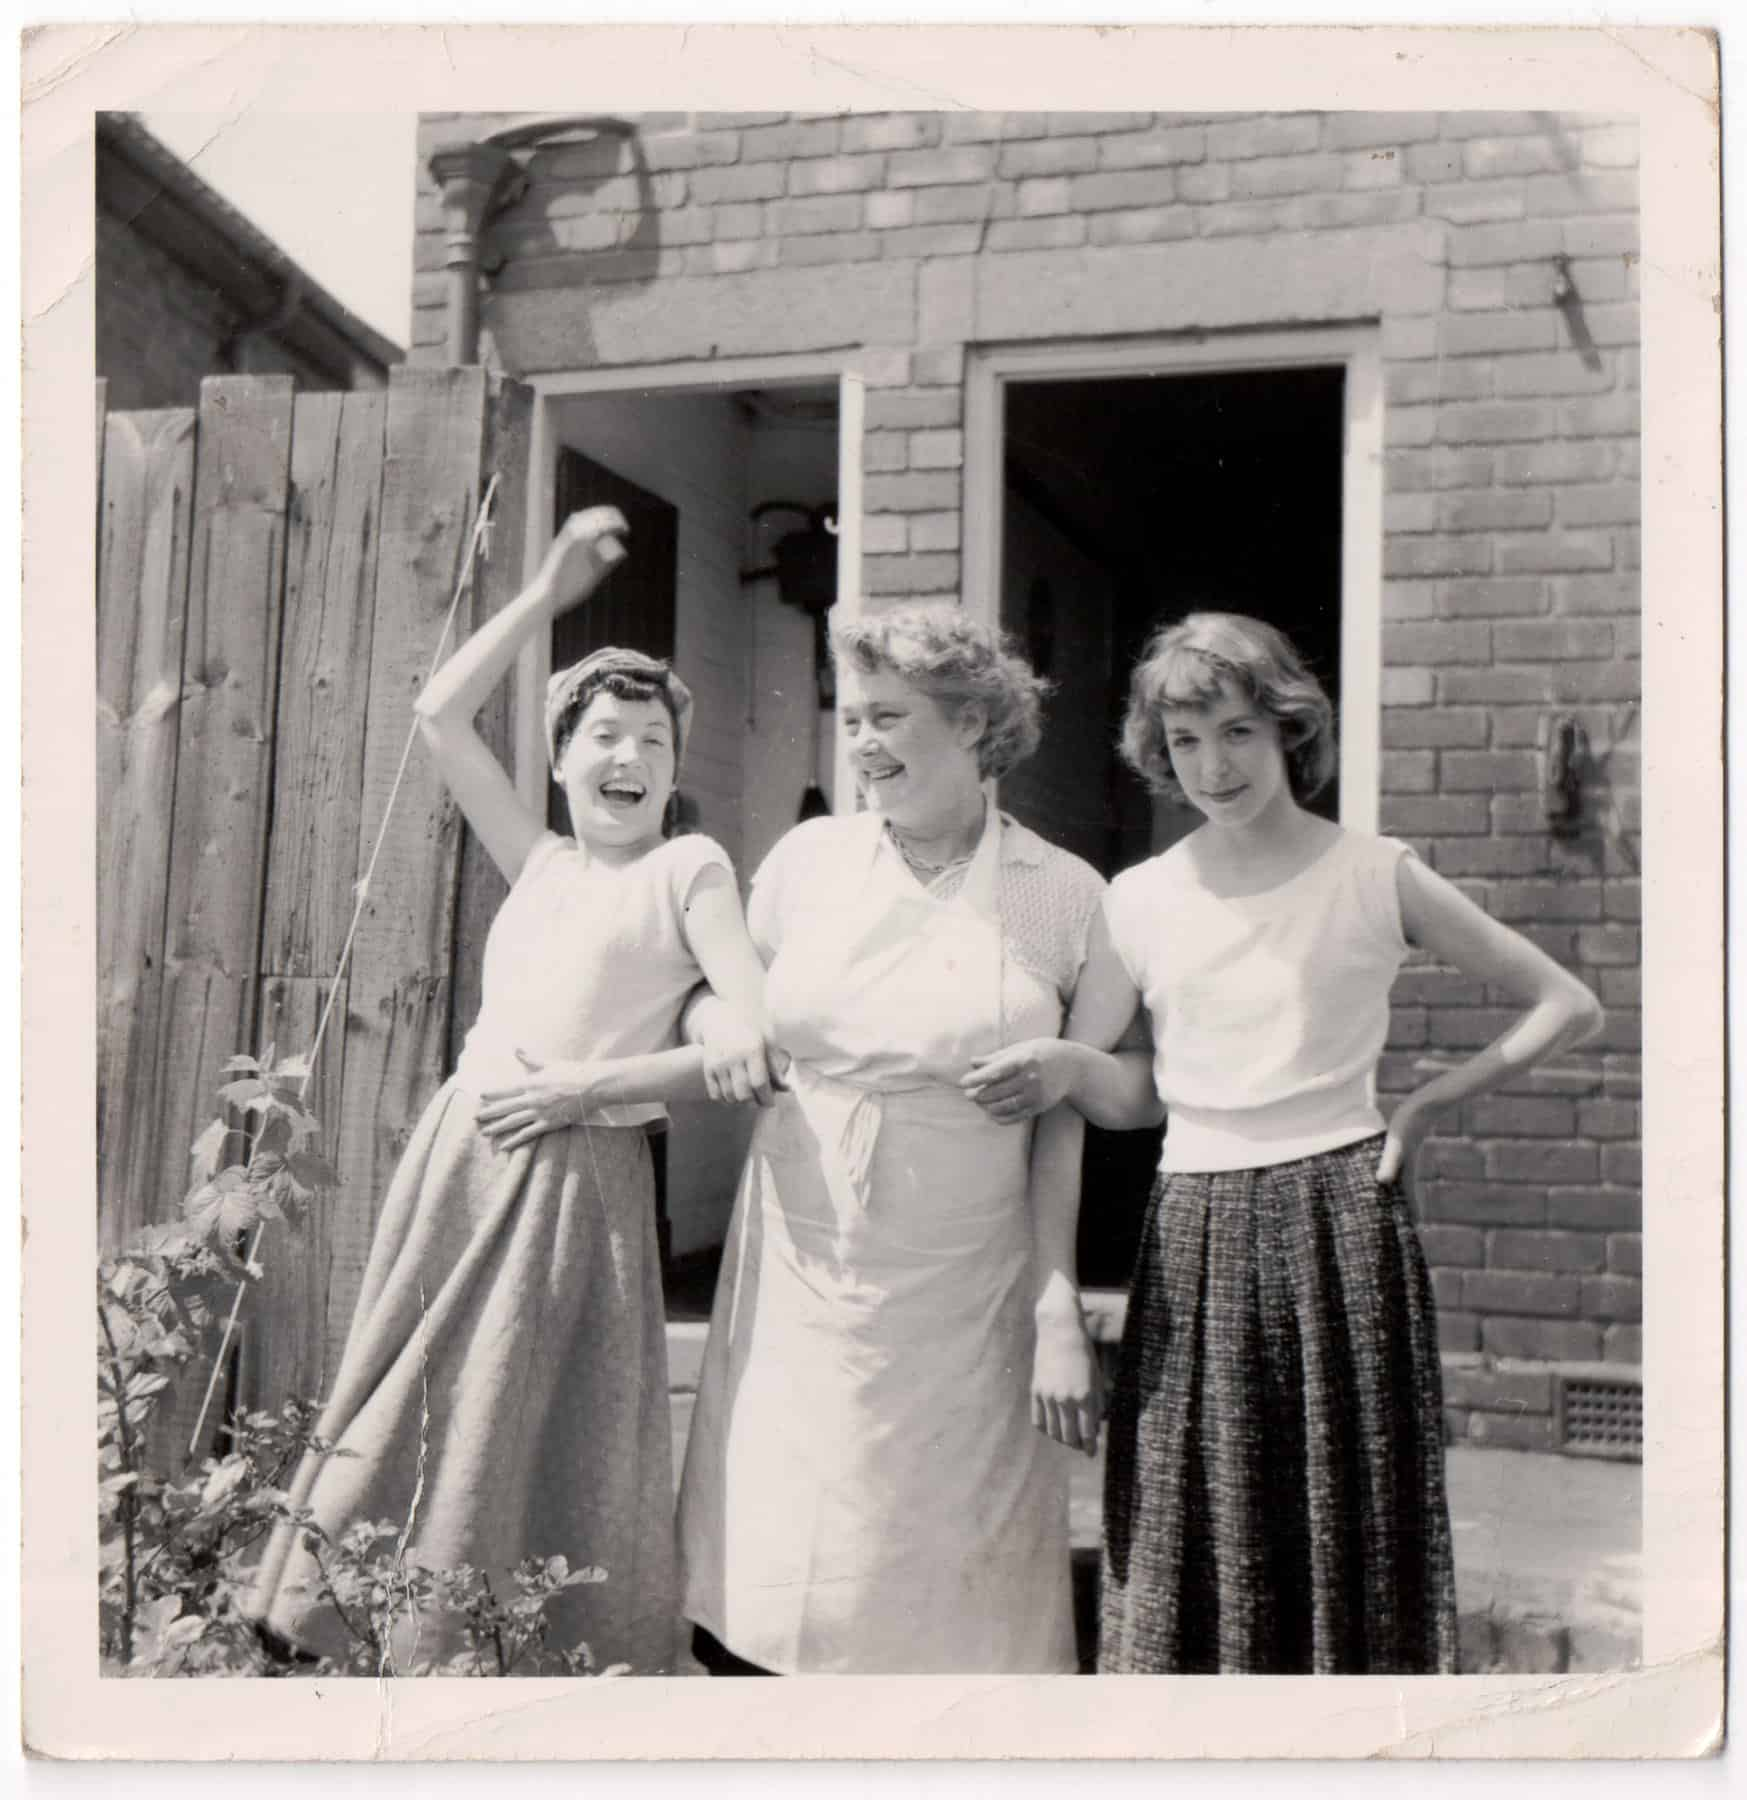 Dorothy: Oh yes, I should think I was about 17there, with a friend Wendy Seeney and her mum their back garden Warley. There were outside toilets even in those days.